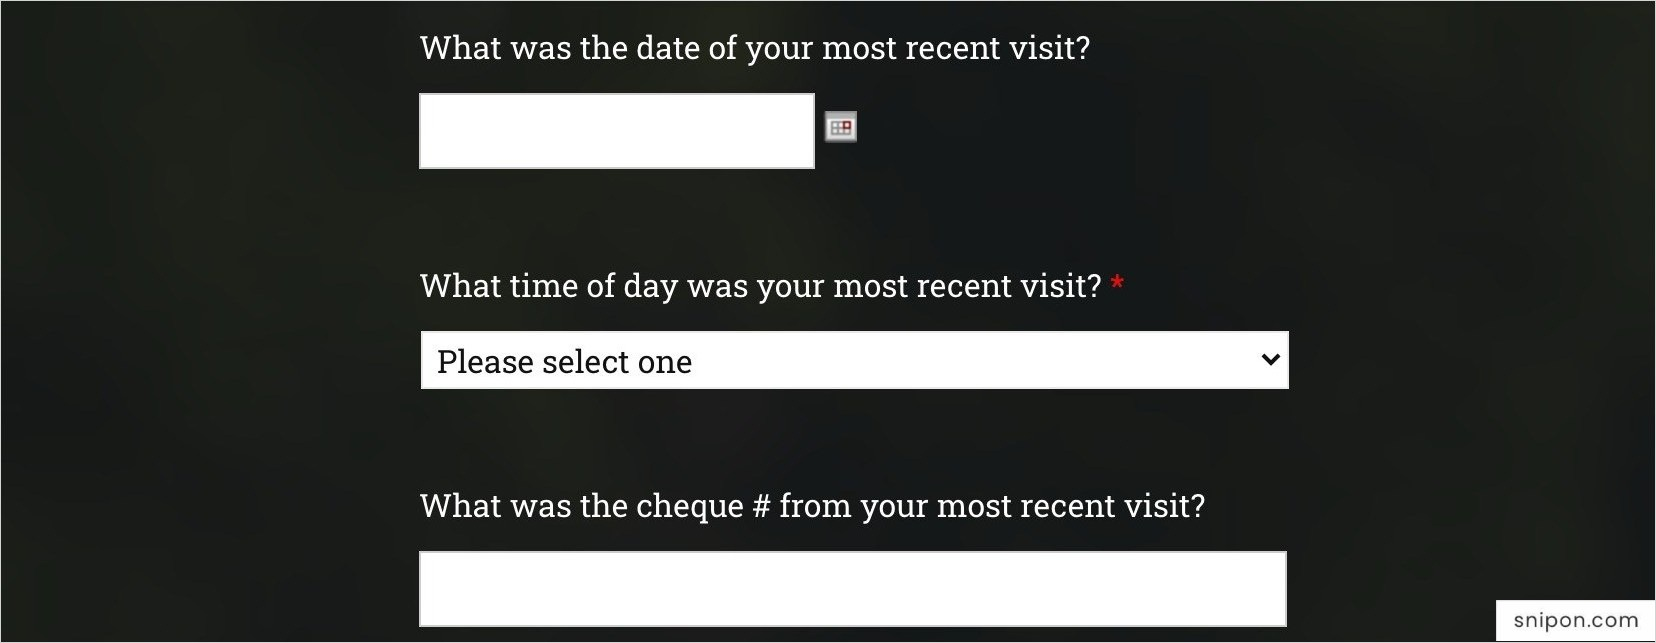 Enter Time, Date, & Cheque Number From Receipt - Turtle Jack's Survey